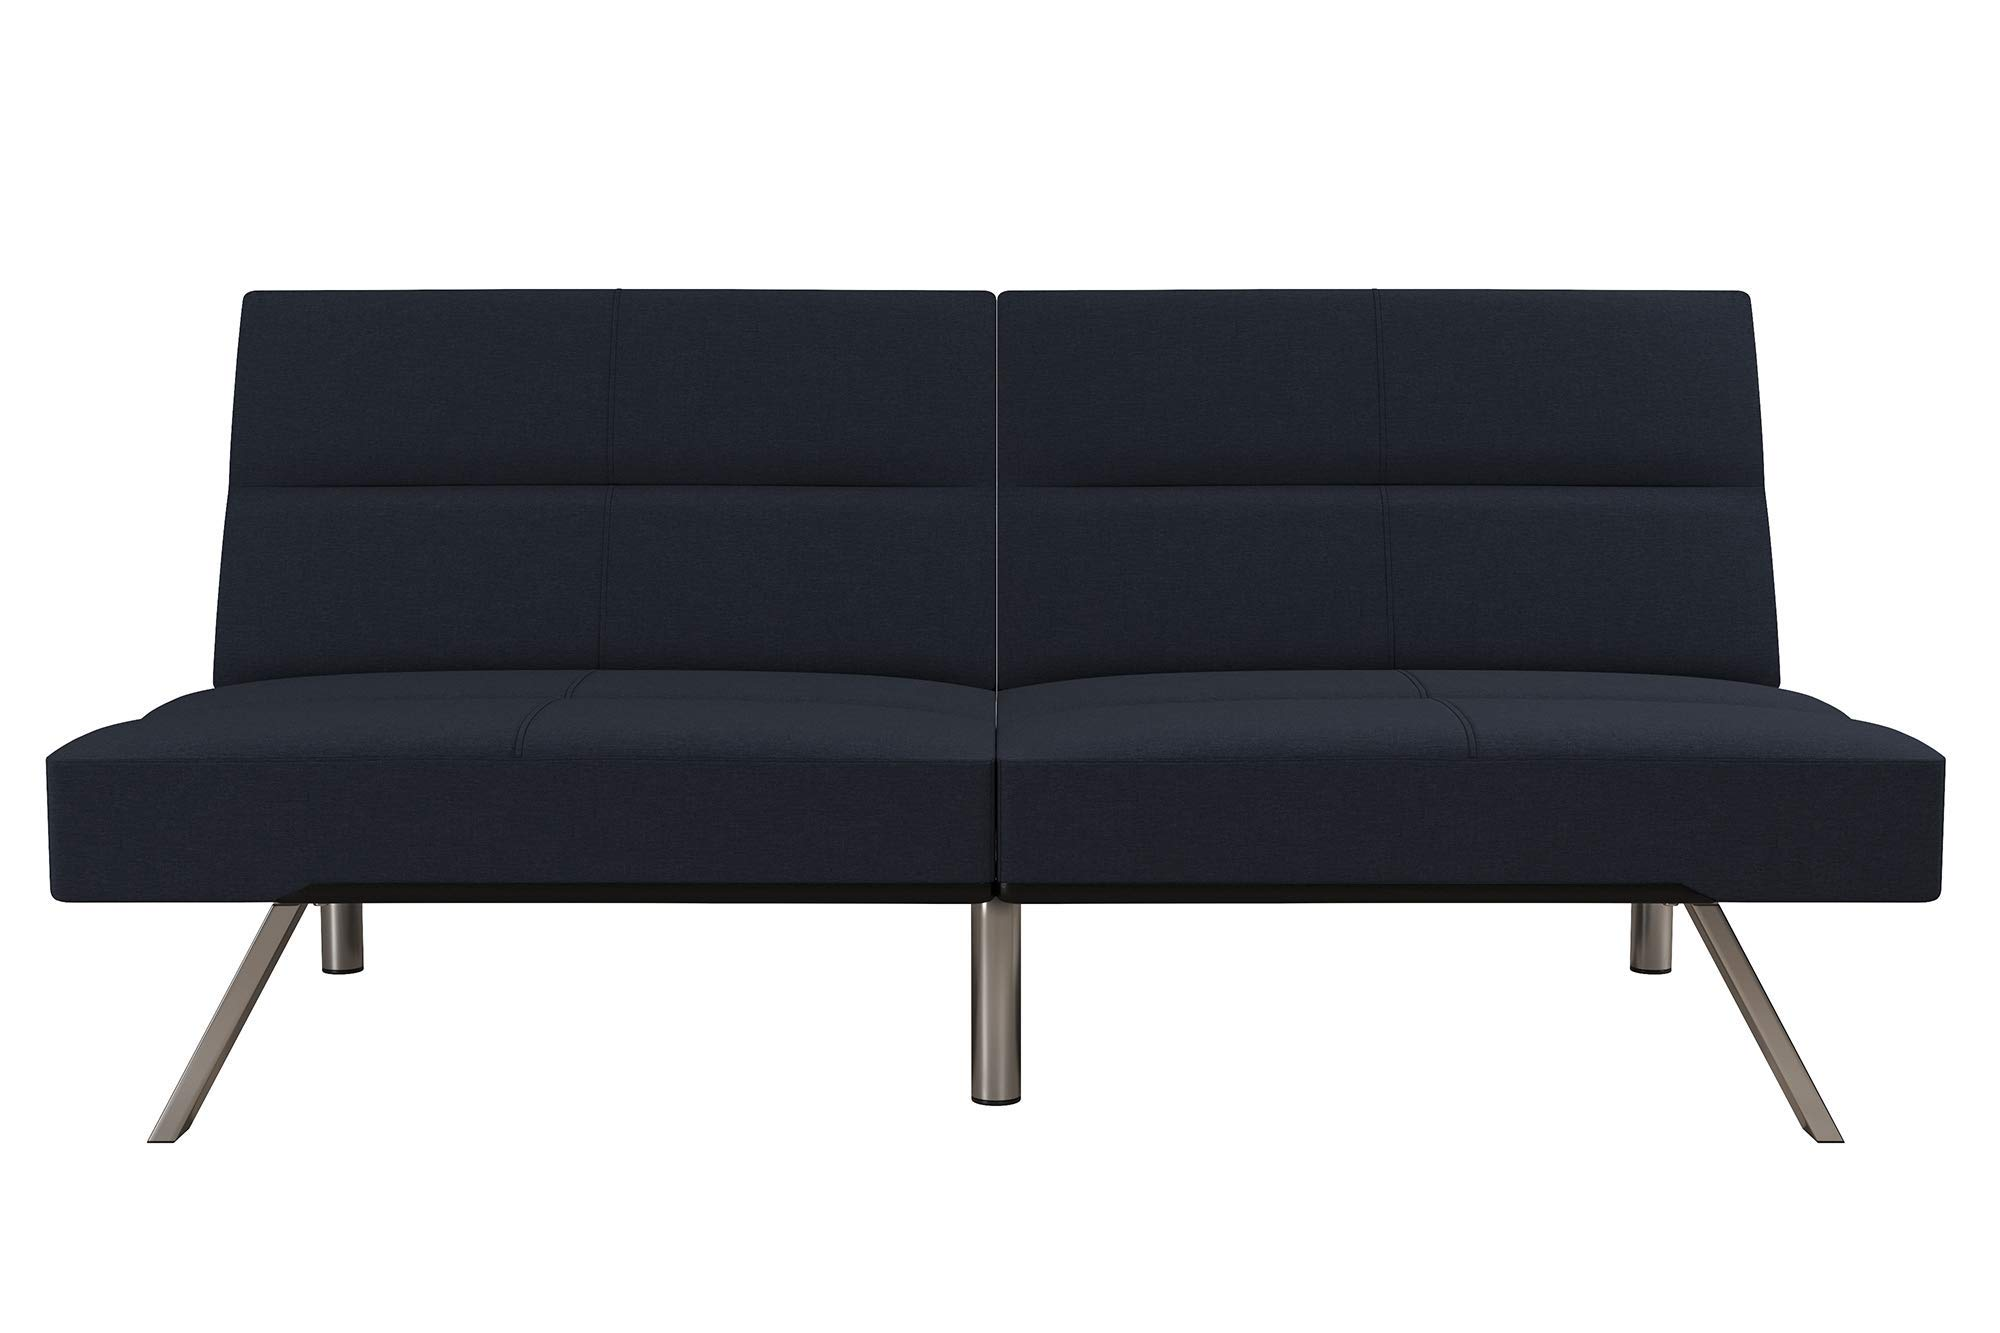 DHP Studio Convertible Futon Couch, Blue Linen by DHP